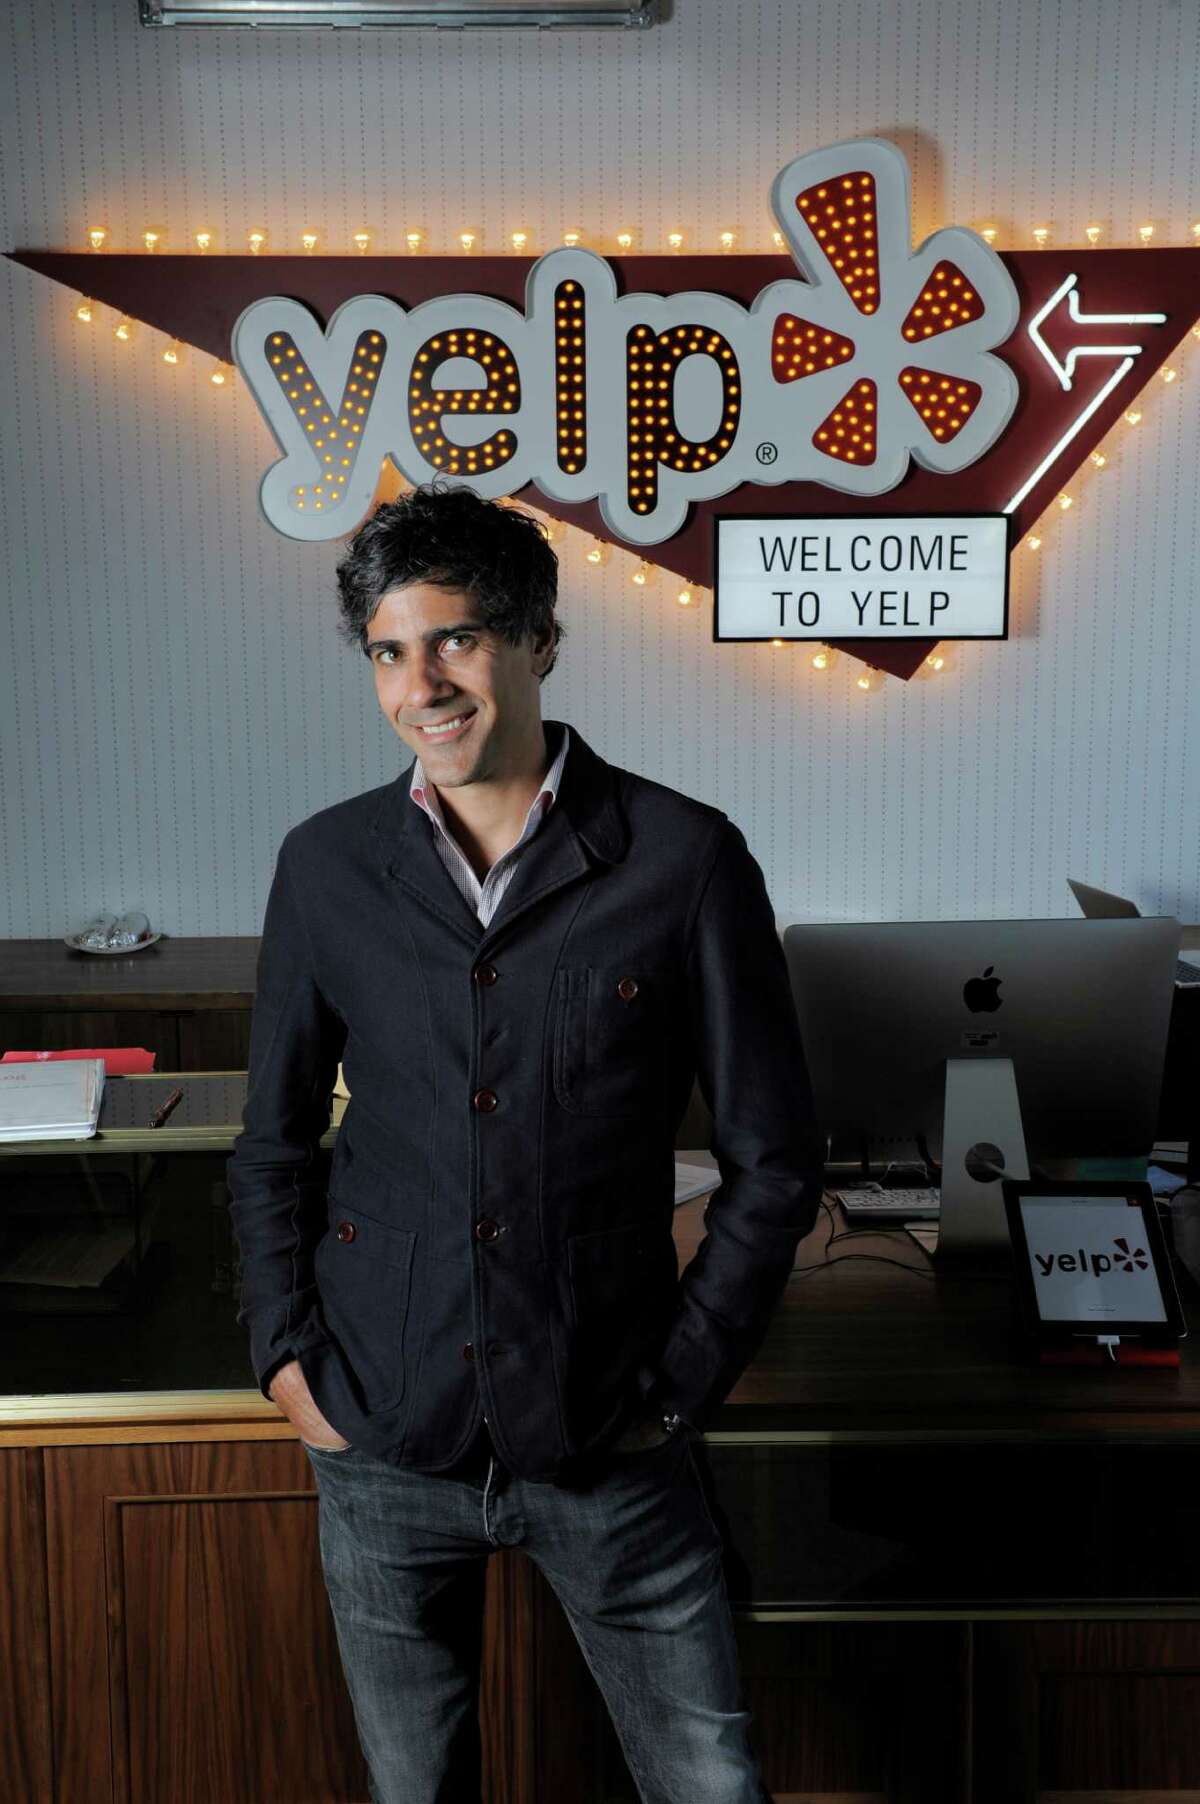 YelpThen : Yelp started as a more complicated version of its current iteration. Back in 2004 when it was founded, Yelp created an email system so users could contact others to recommend local businesses. Now: They've cut out the noise, and Yelp now lets users look for reviews of businesses themselves.